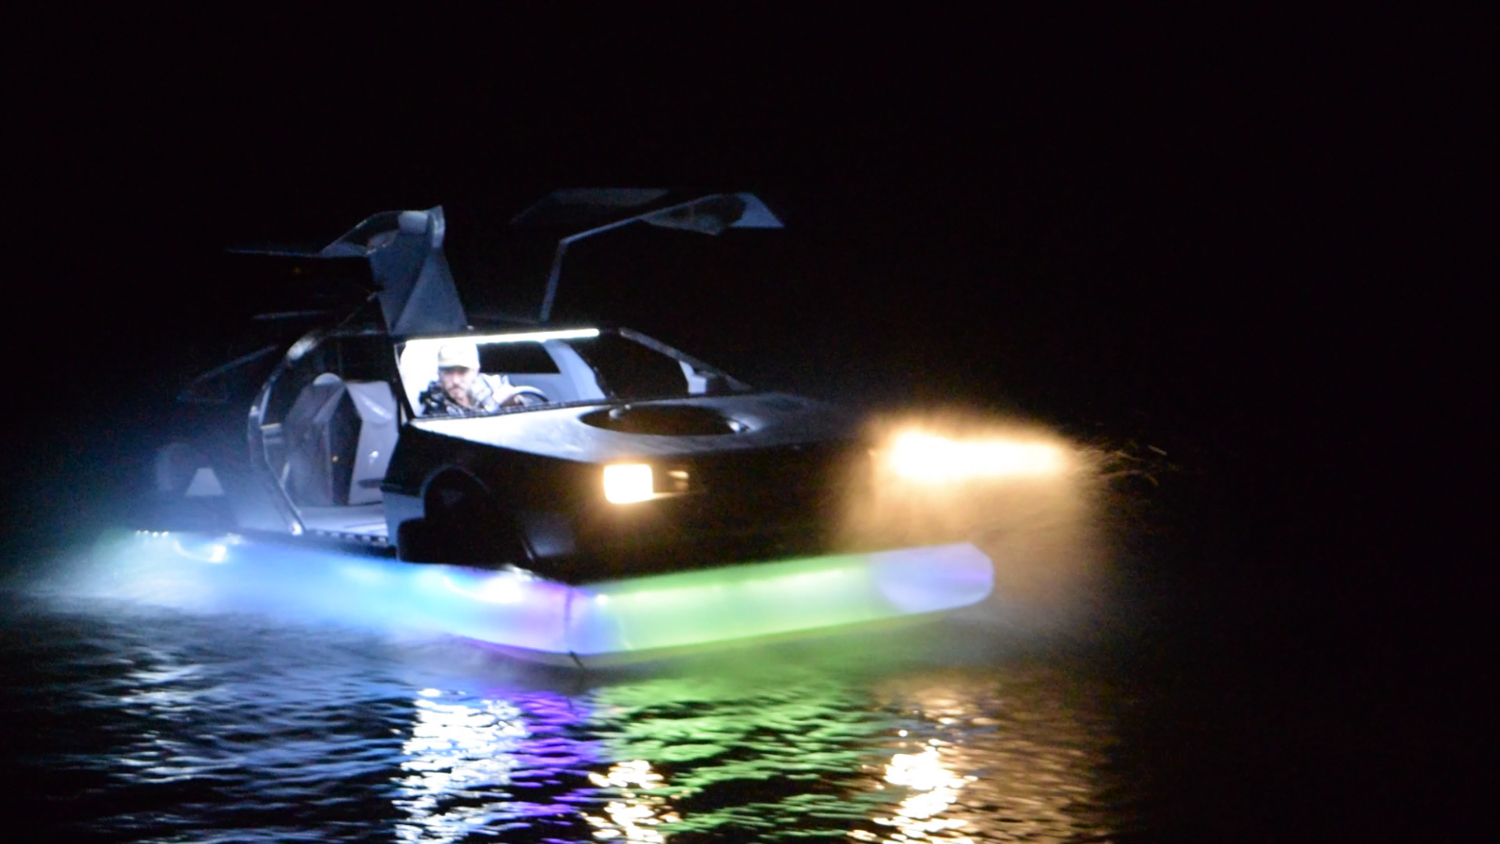 delorean hovercraft night underglow